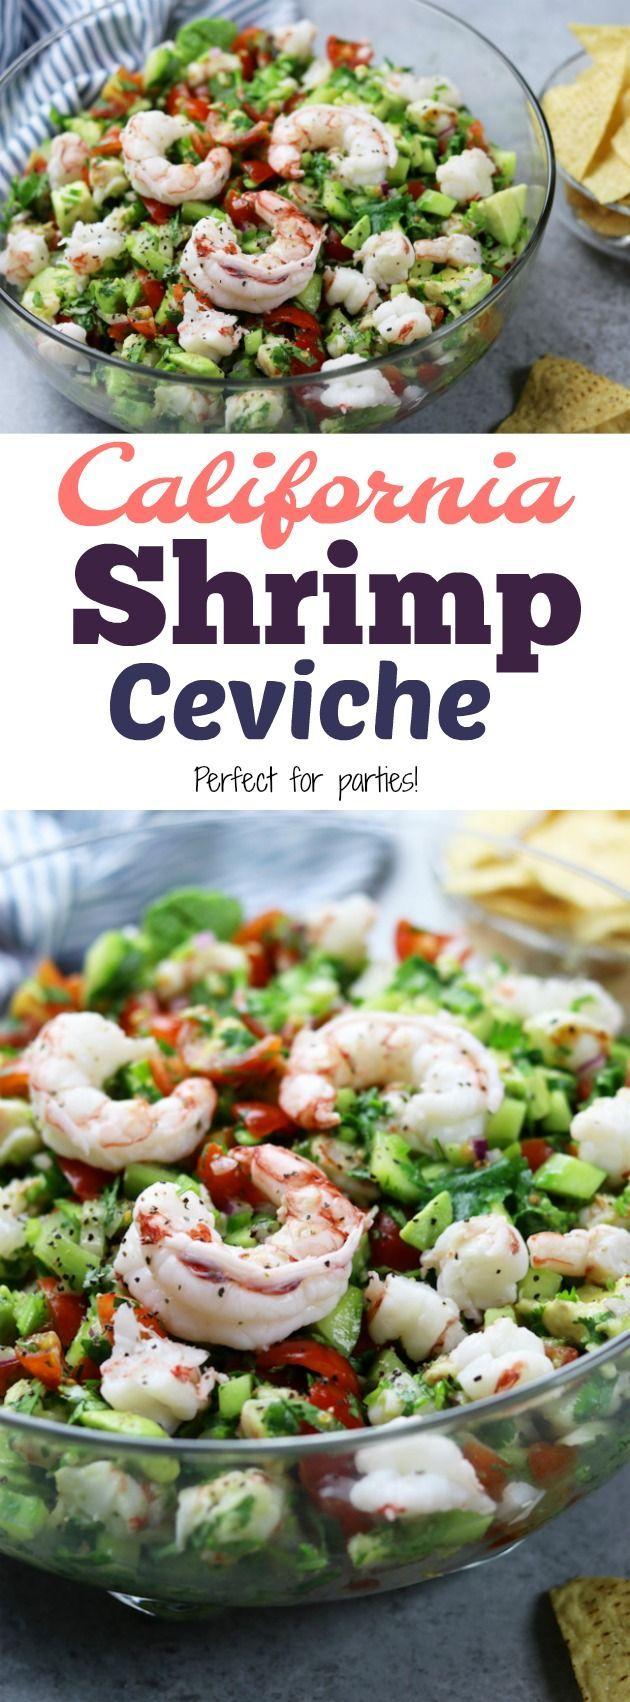 Light and refreshing, California Shrimp Ceviche recipe makes a perfect appetizer or meal replacement. A wonderful companion to healthy chips or stuffed in a lettuce leaf. https://www.thefedupfoodie.com